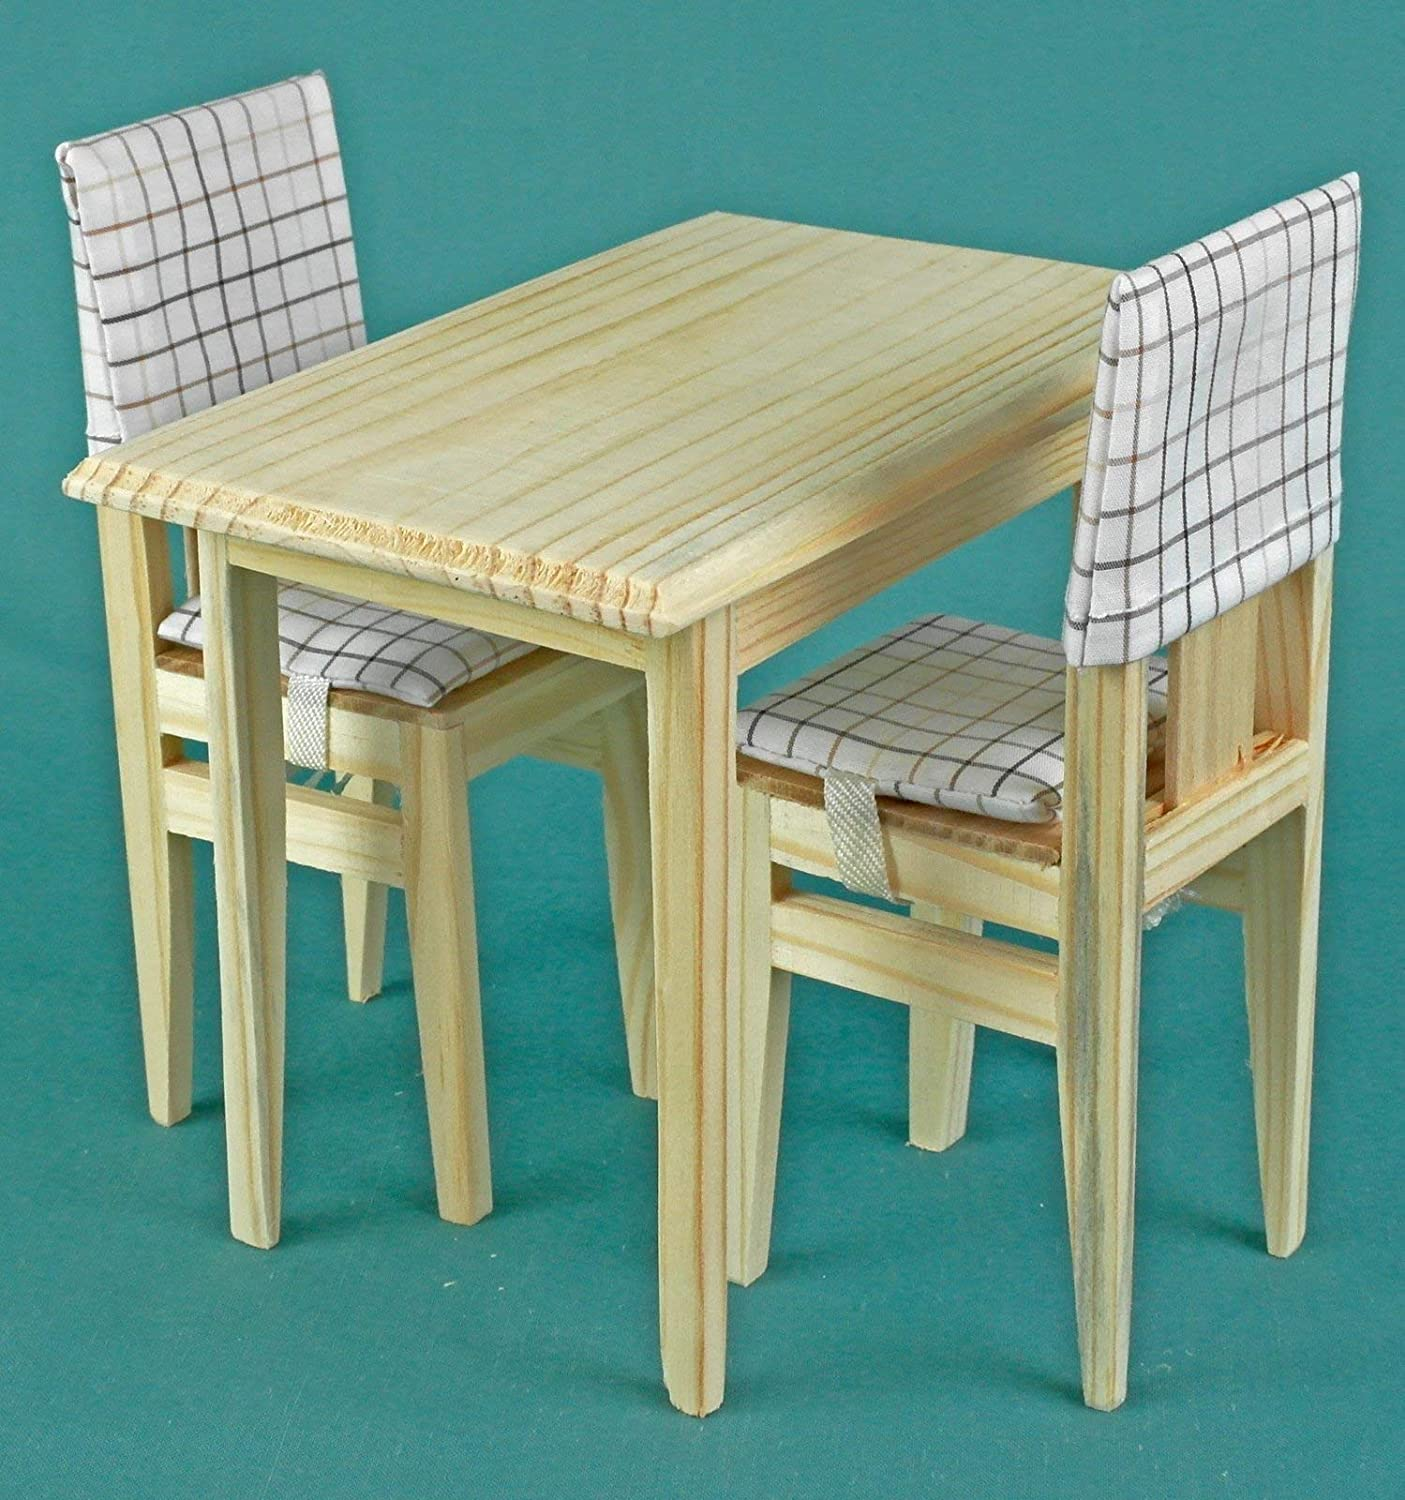 Table and 2 chairs set, dollhouse wooden furniture 1:6 play-scale, for 12 inch dolls, for Barbie Momoko Blythe, accessories role-playing games